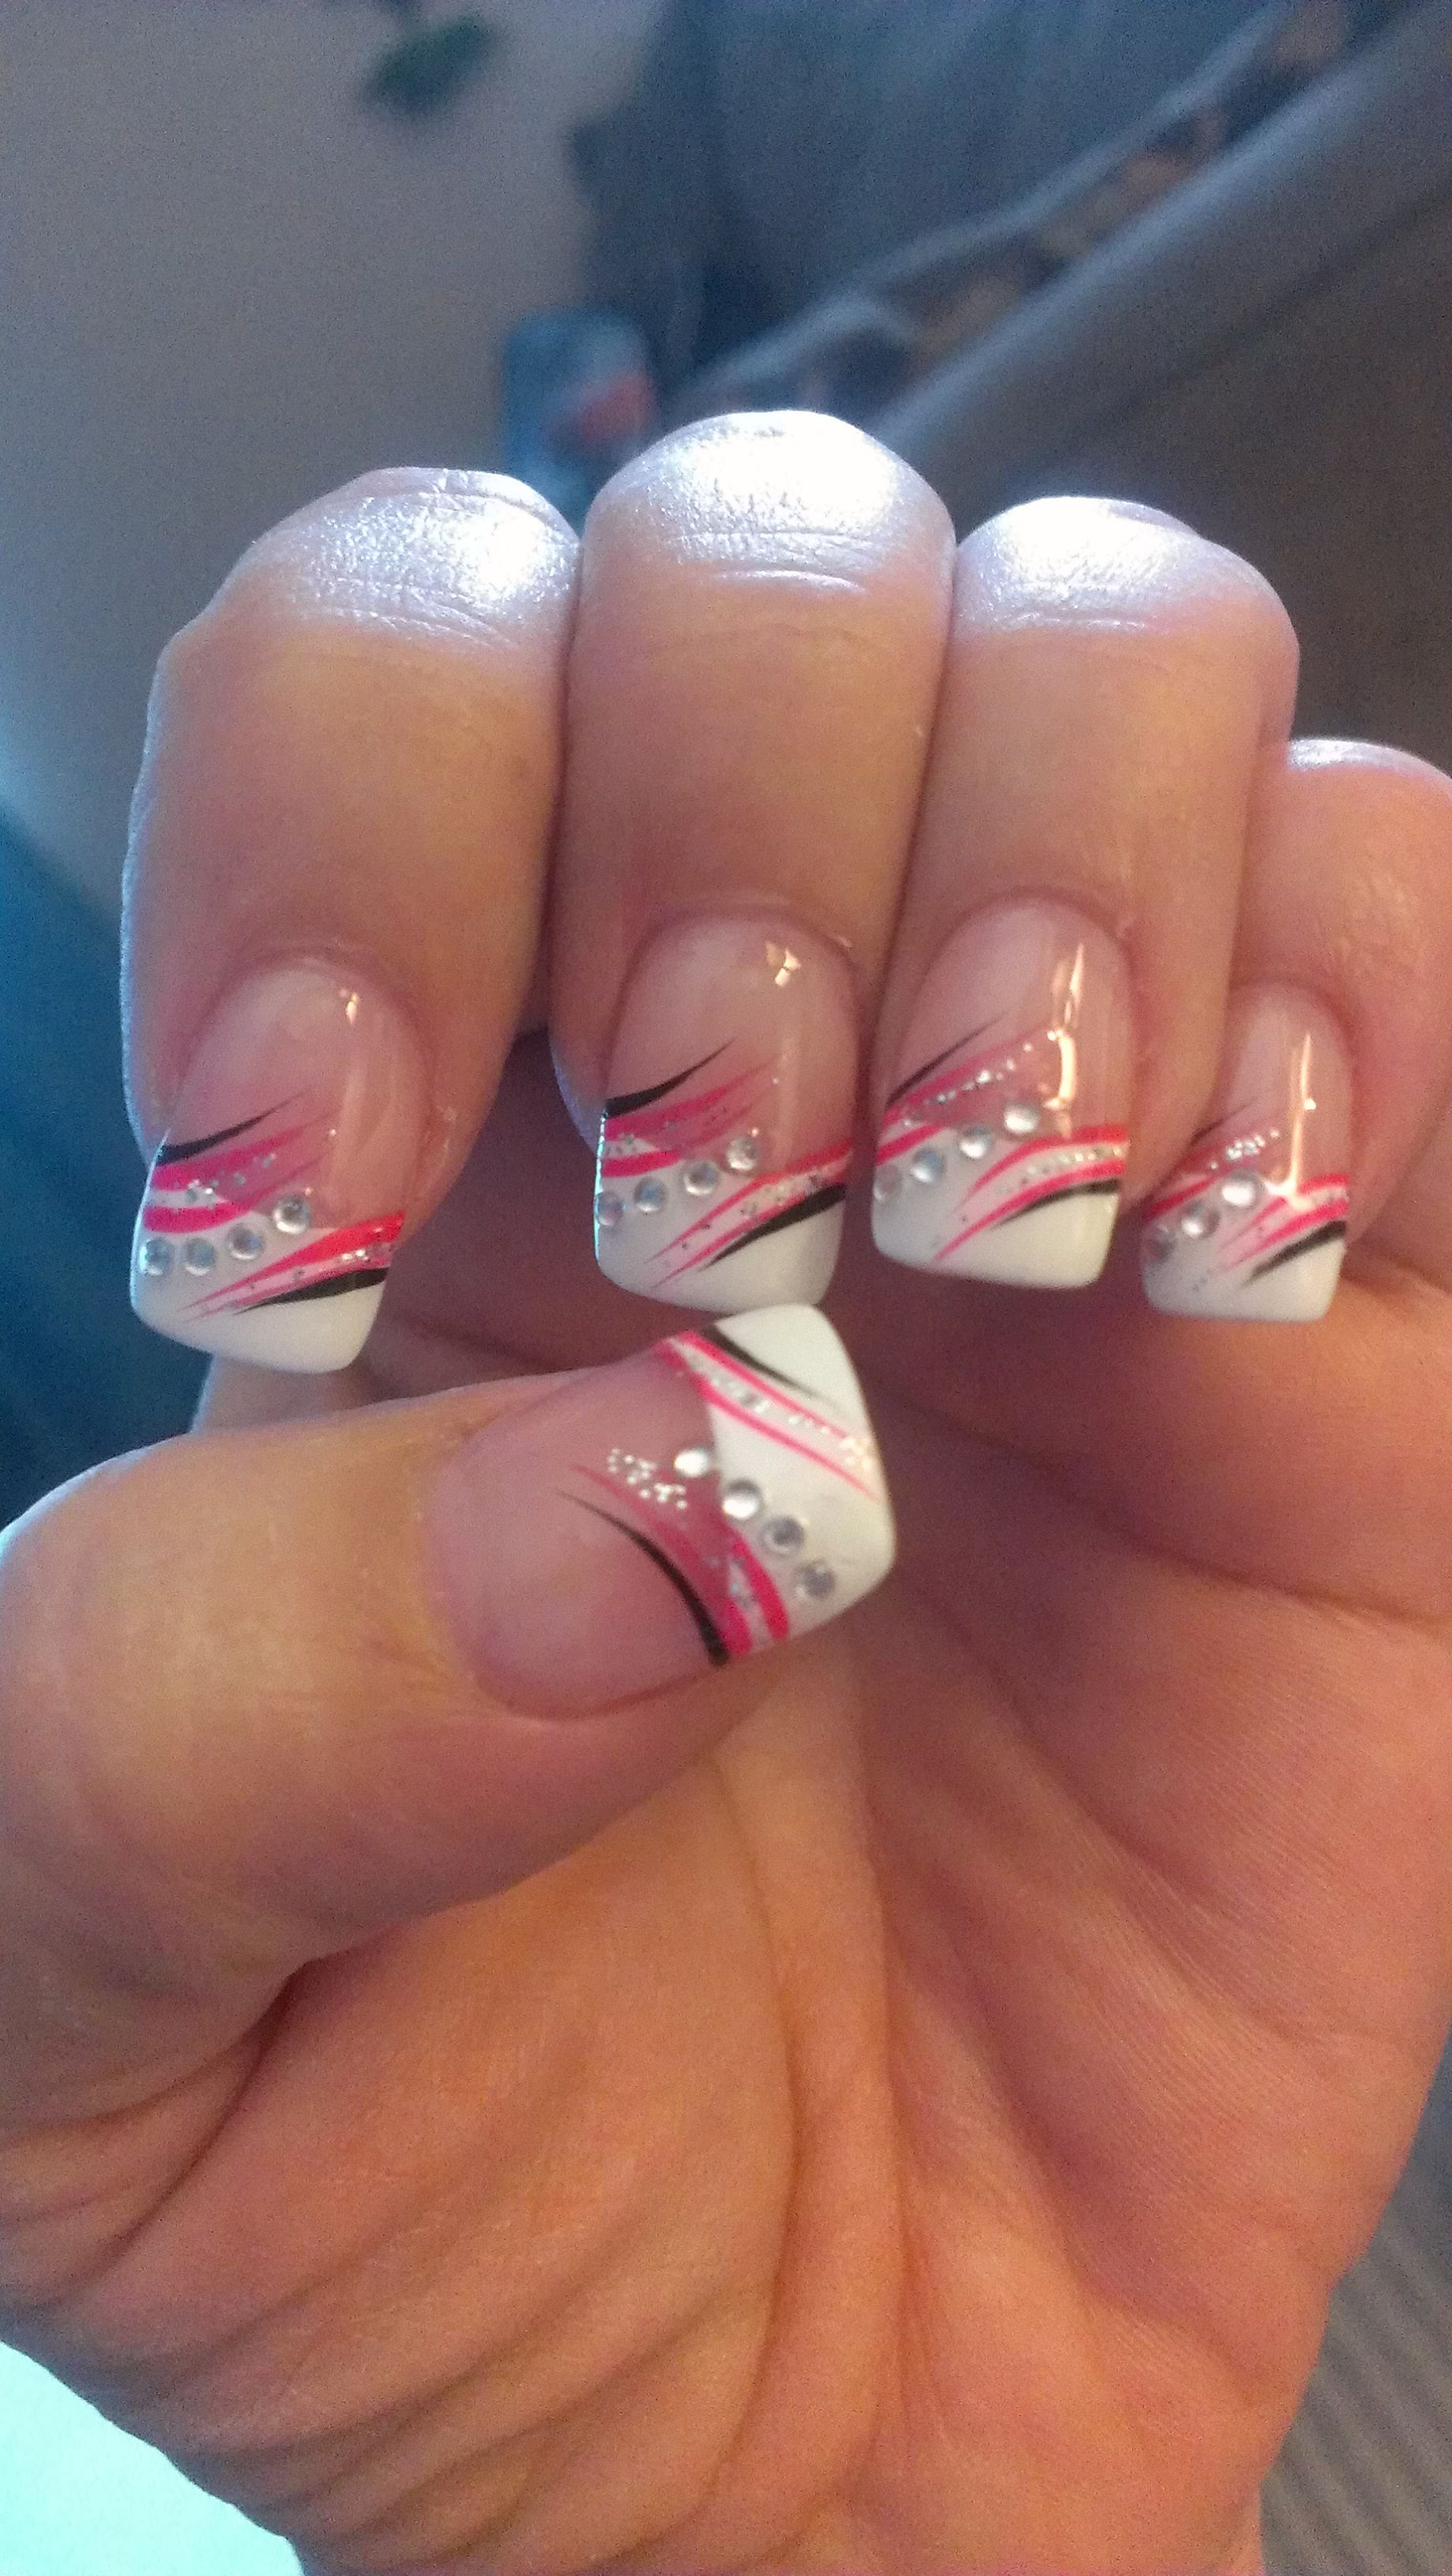 How To Make Nails Grow Faster Stronger Most Effective Remedies